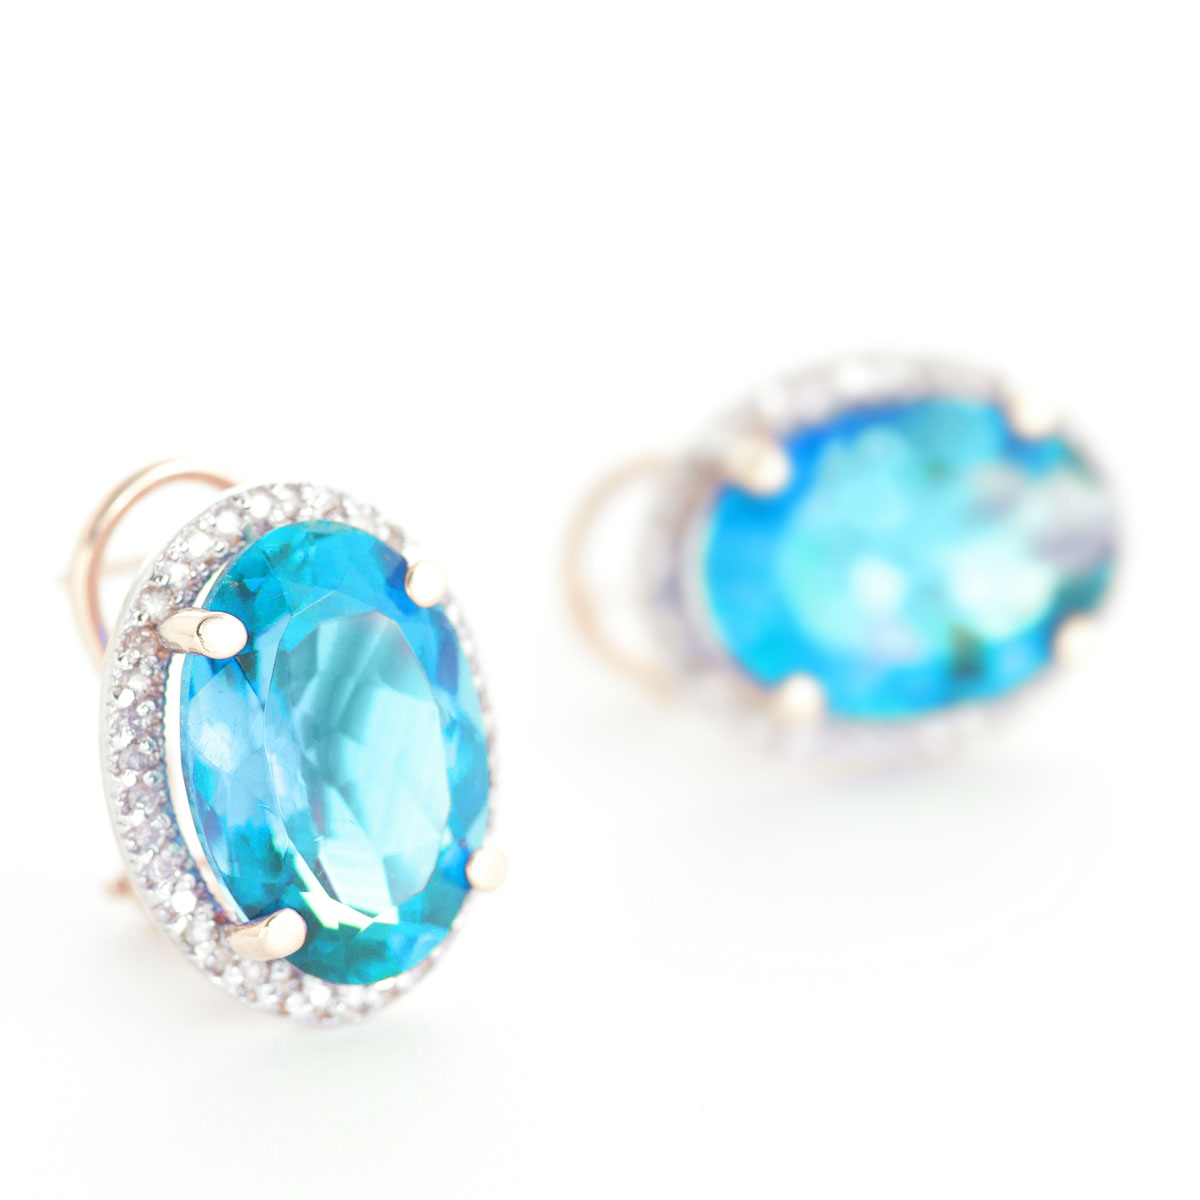 Blue Topaz French Clip Halo Earrings 15.16 ctw in 9ct Rose Gold